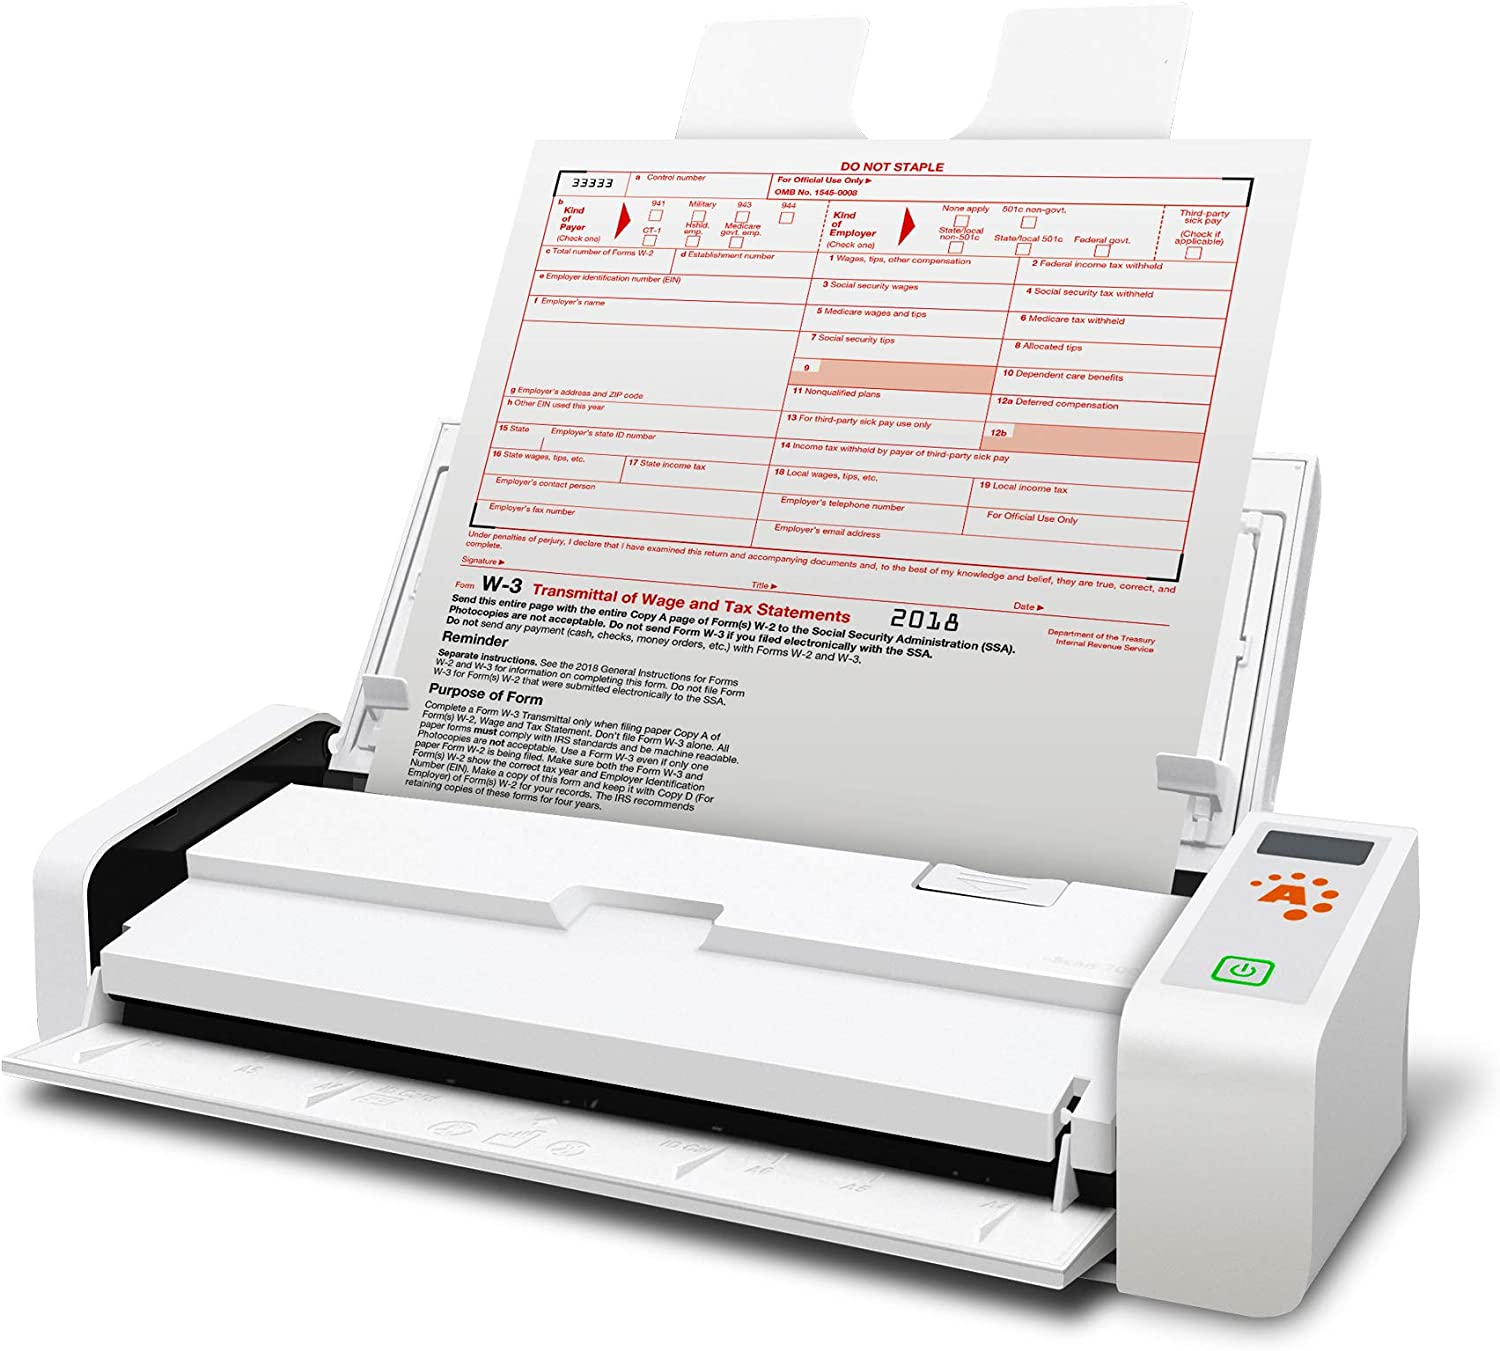 Ambir nScan 700gt Hybrid Duplex Document Scanner